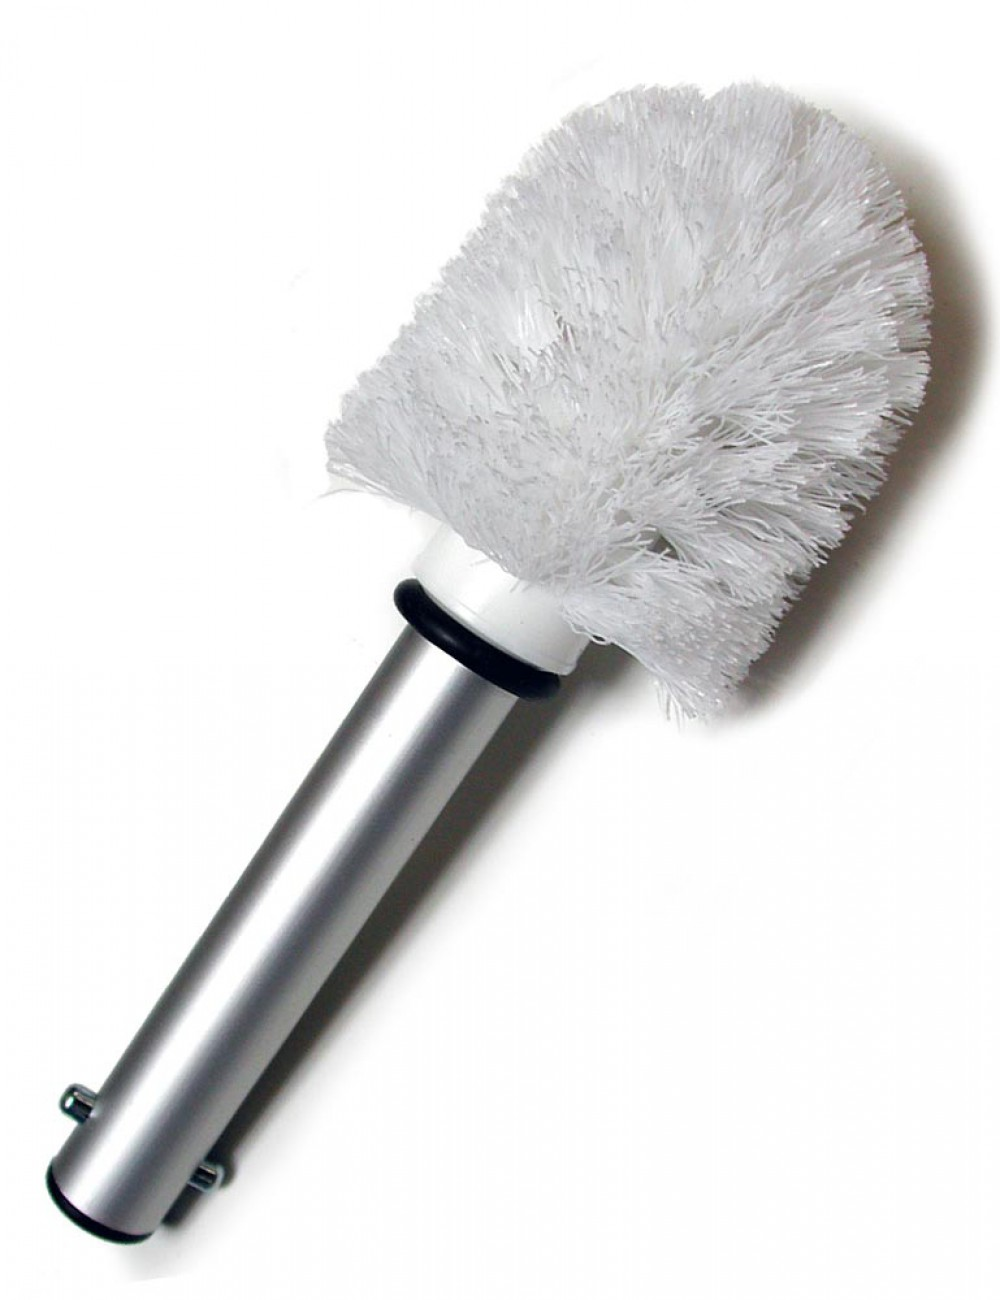 Toilet Brush Attachment